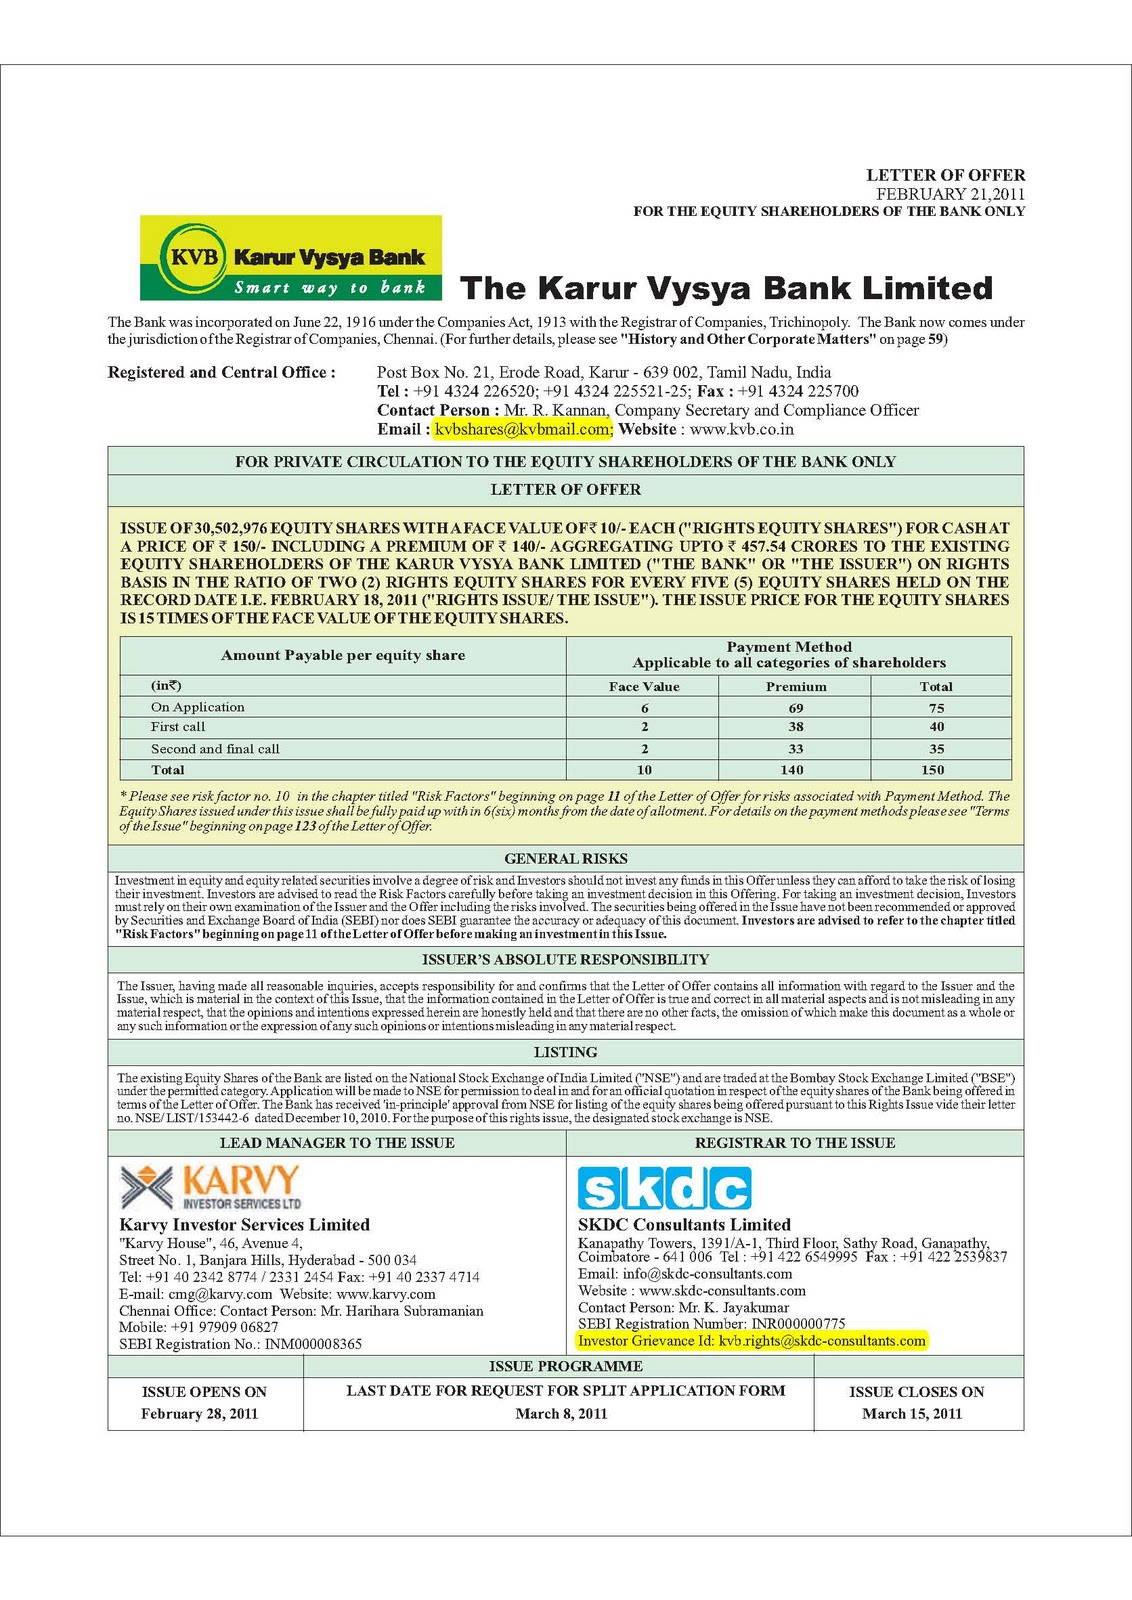 EASY Ways to Invest in India: Karur Vysya Bank - Rights issue - More Online Application Form Of Karur Vysya Bank on